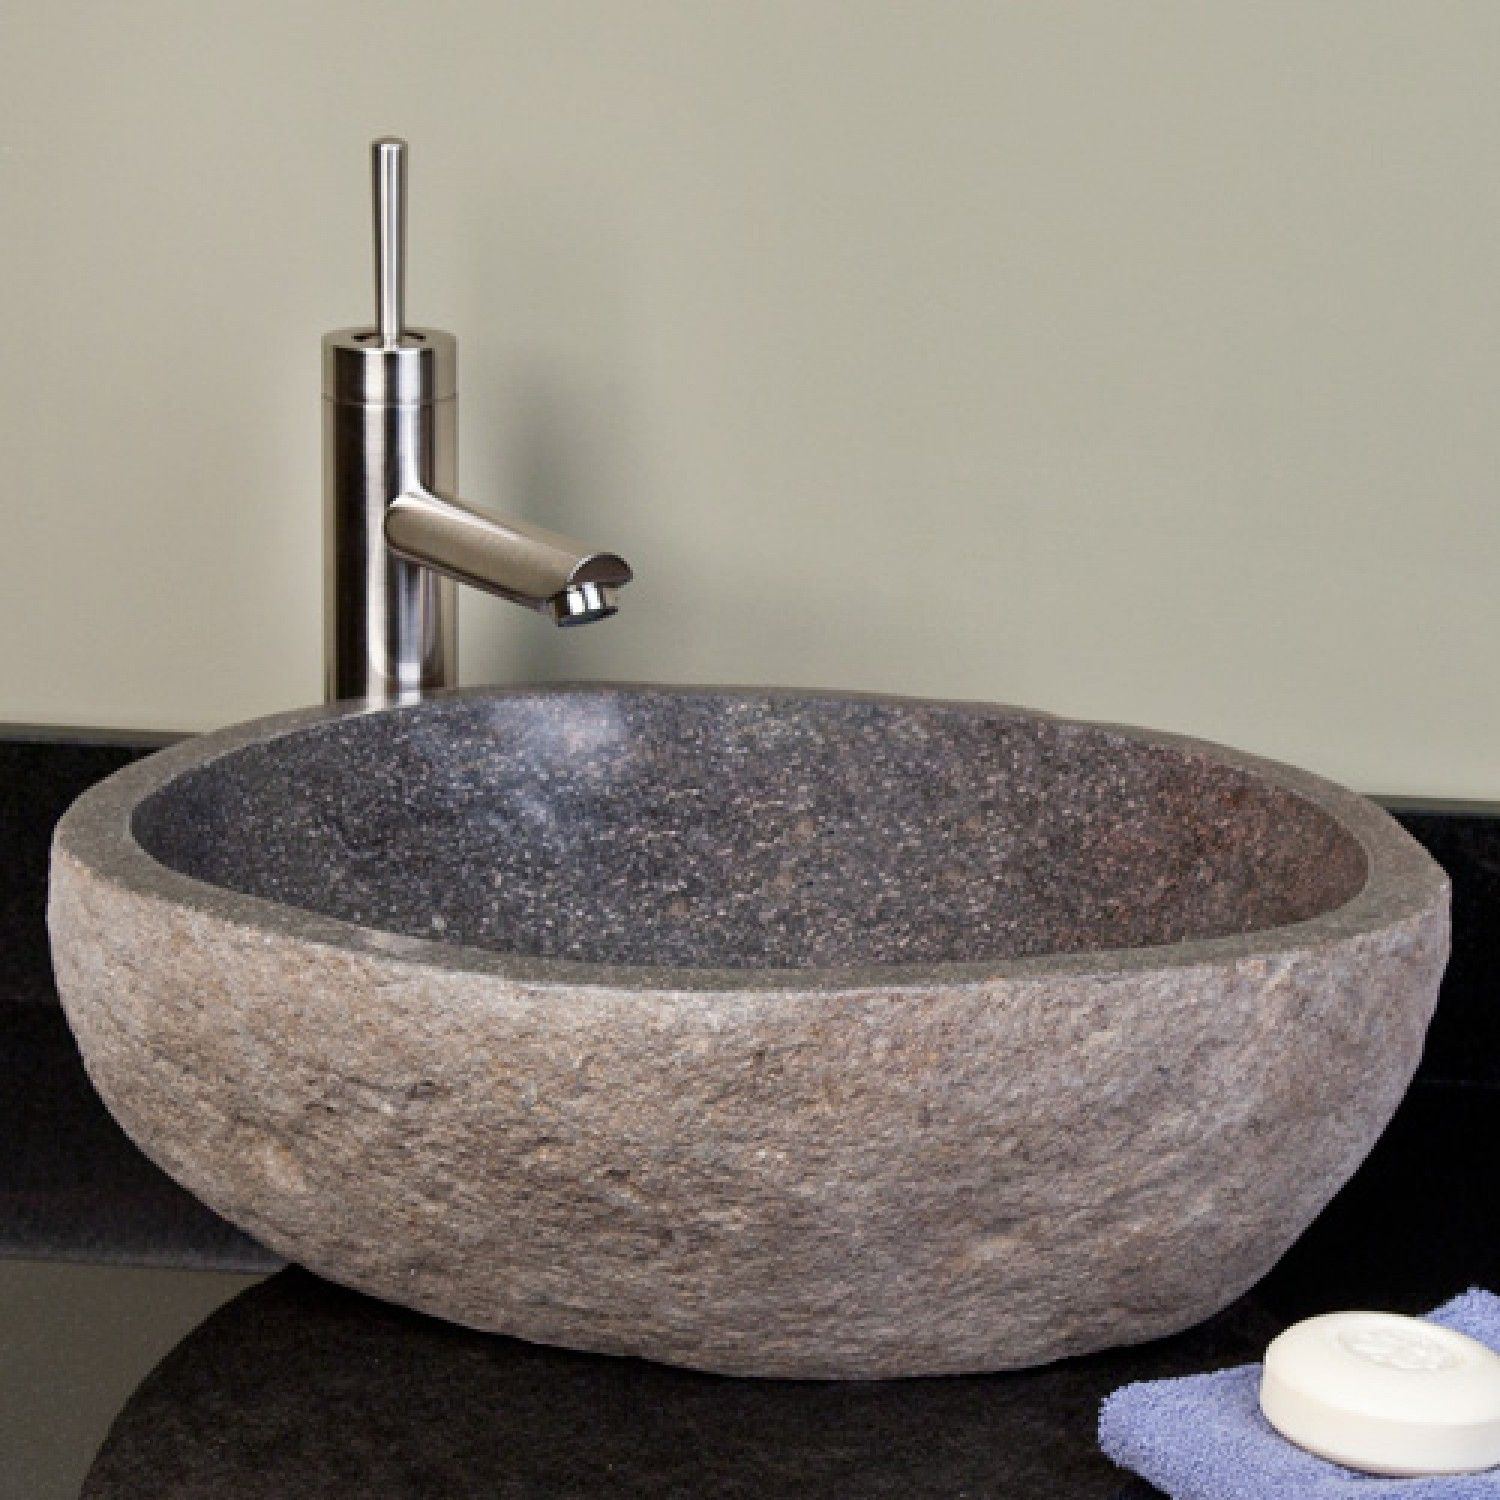 Small Stone Bathroom Sink | The o'jays, It is and Hands